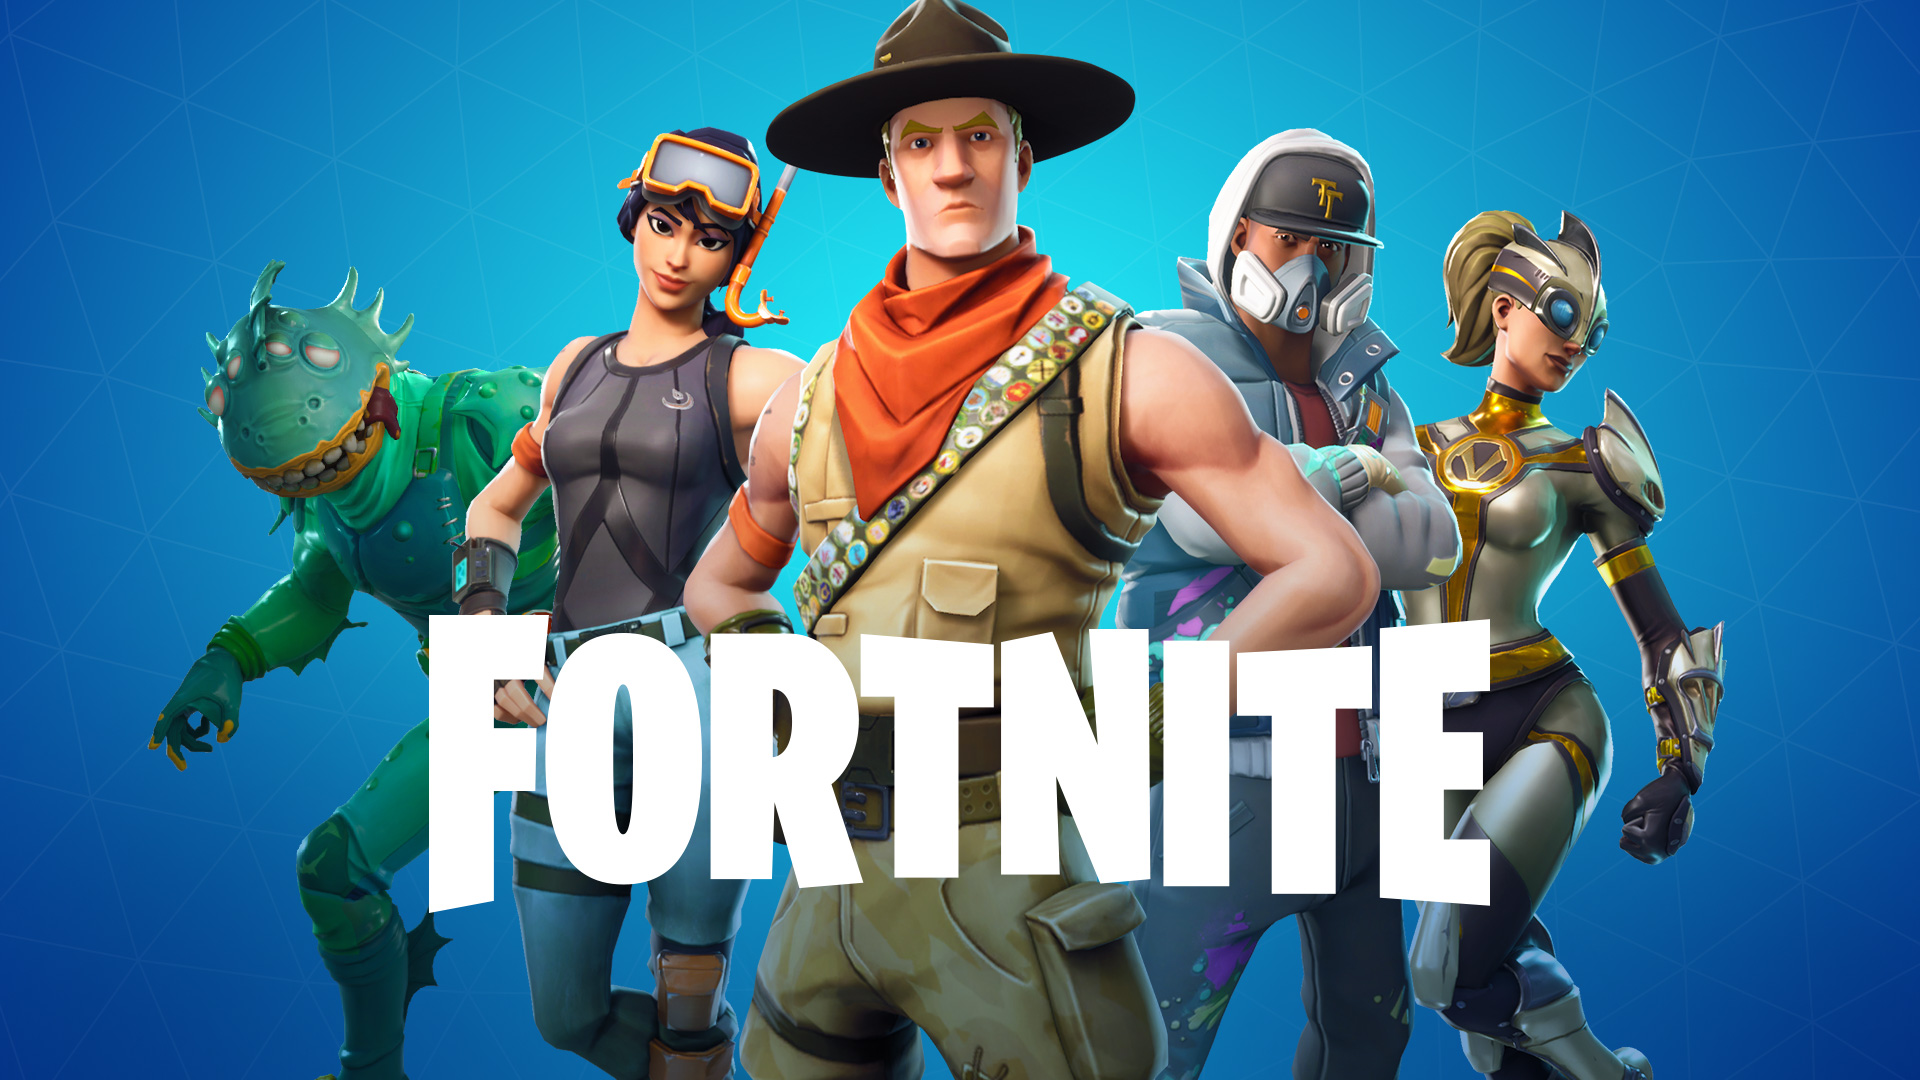 Fortnite PC record beaten by console players